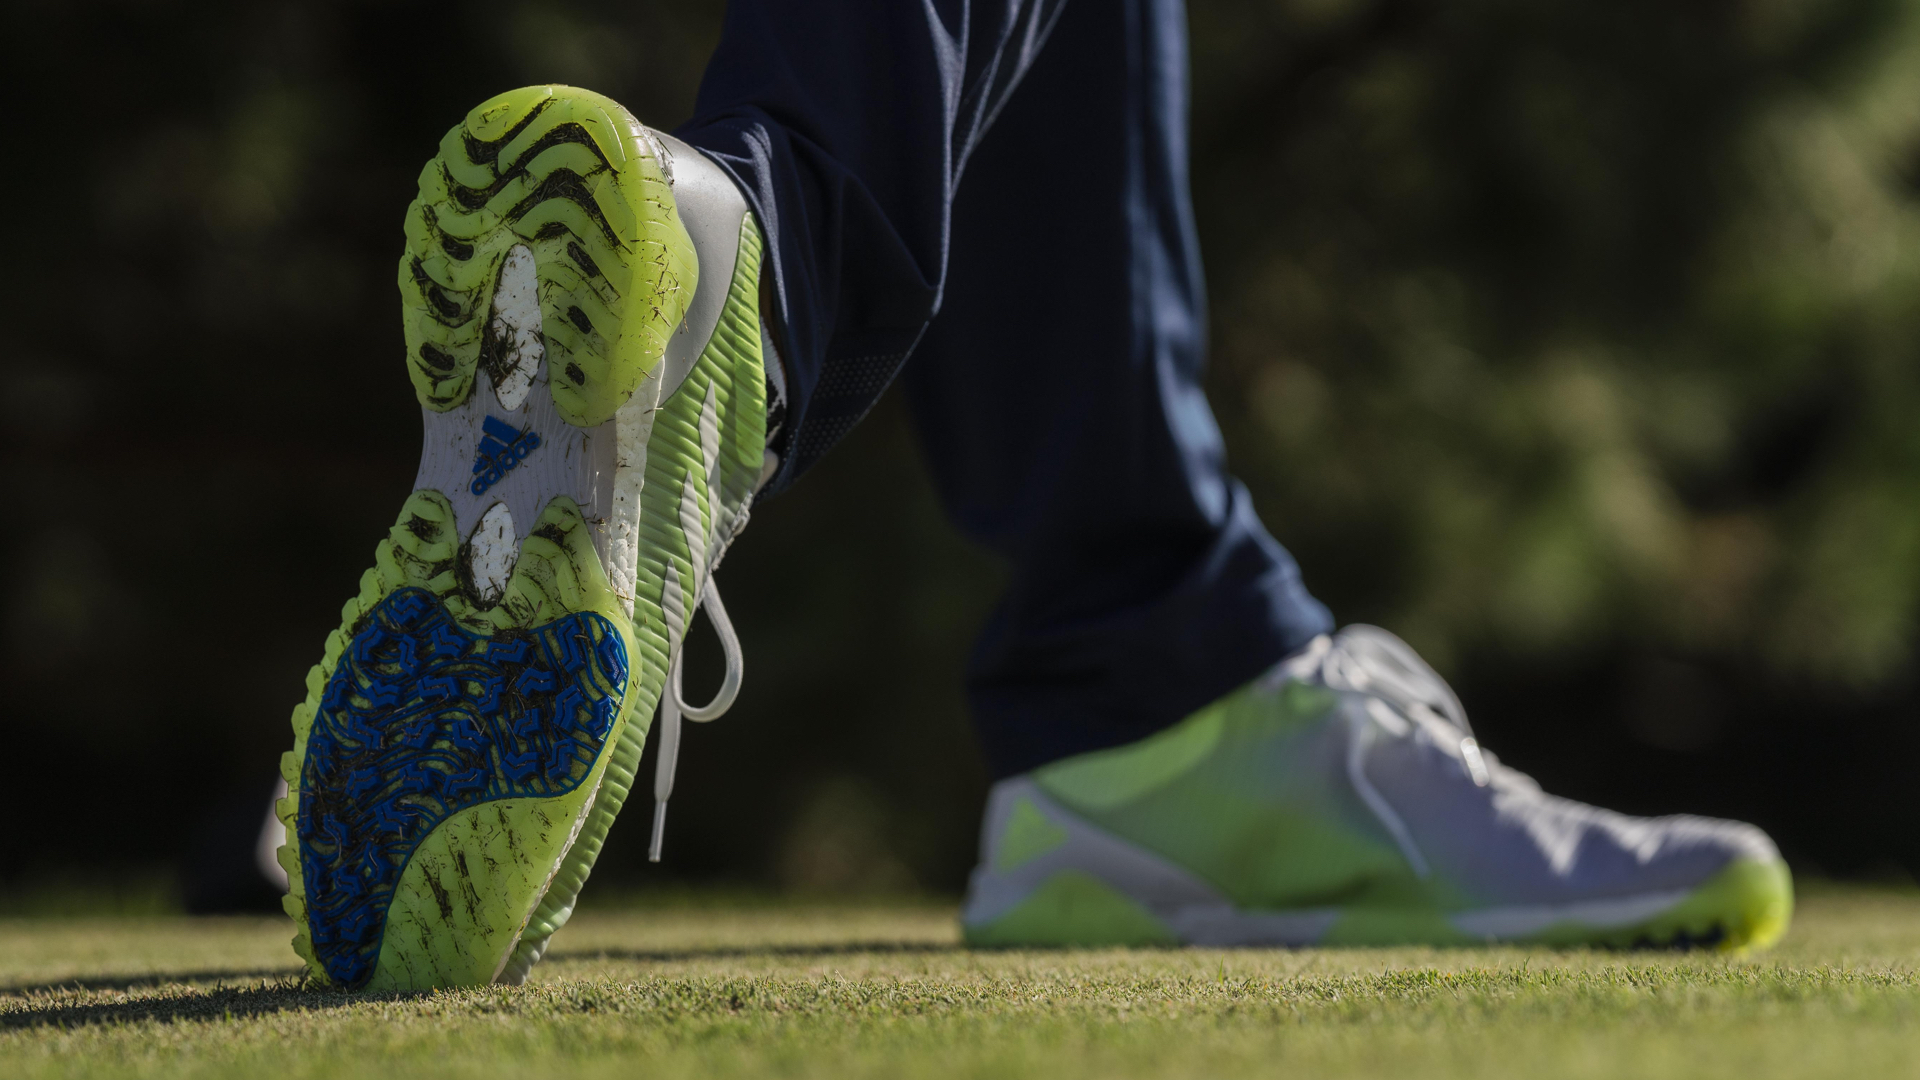 best spiked and spikeless golf shoes